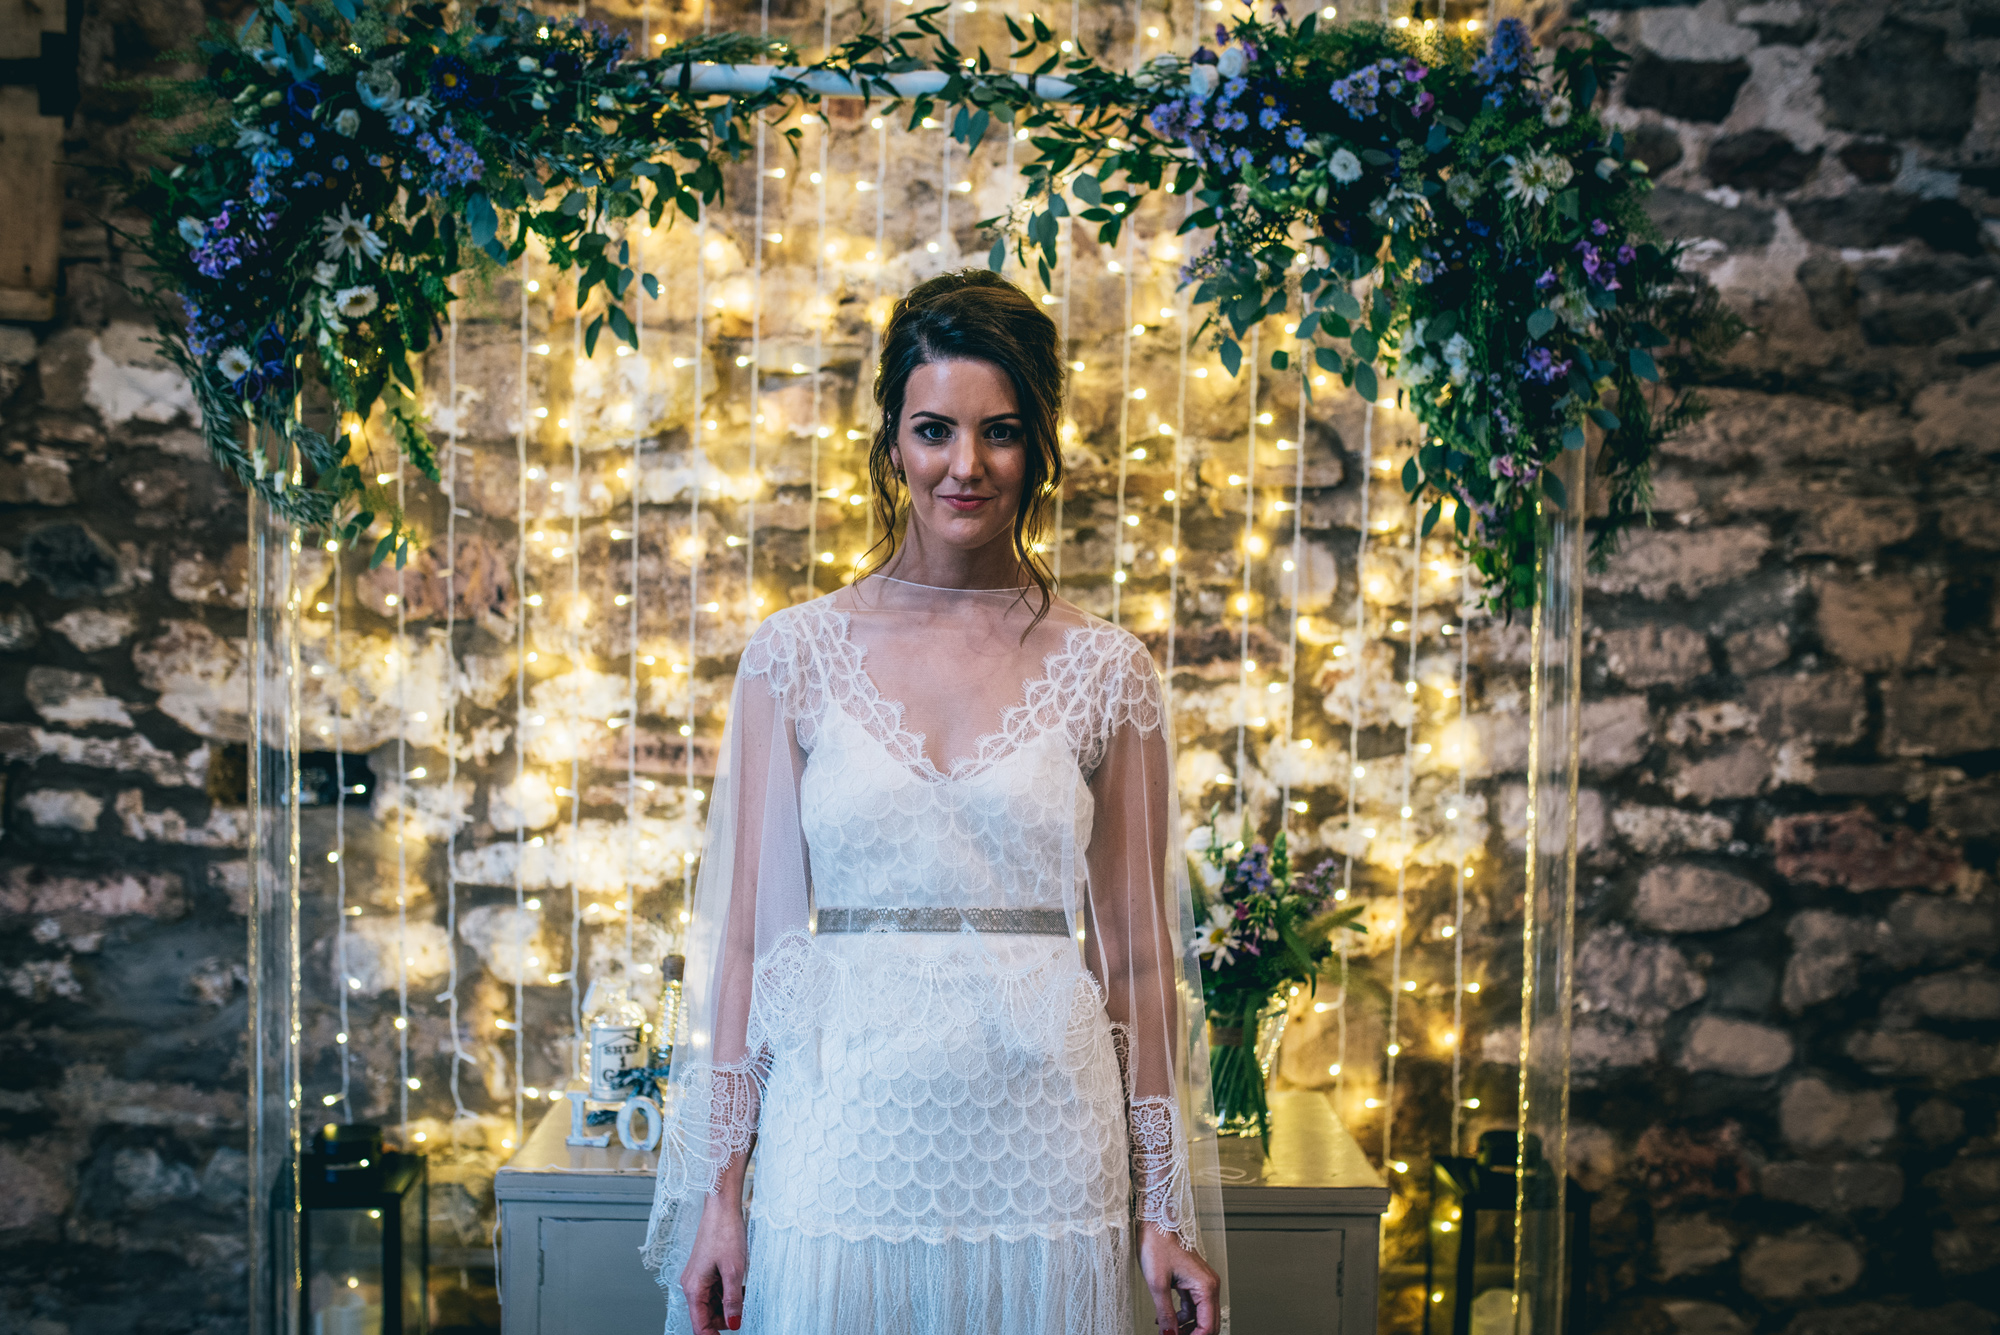 Kate-Beaumont-Sheffield-Lucy-Bohemian-Lace-Dress-Barn-Wedding-Cumbria-30.jpg